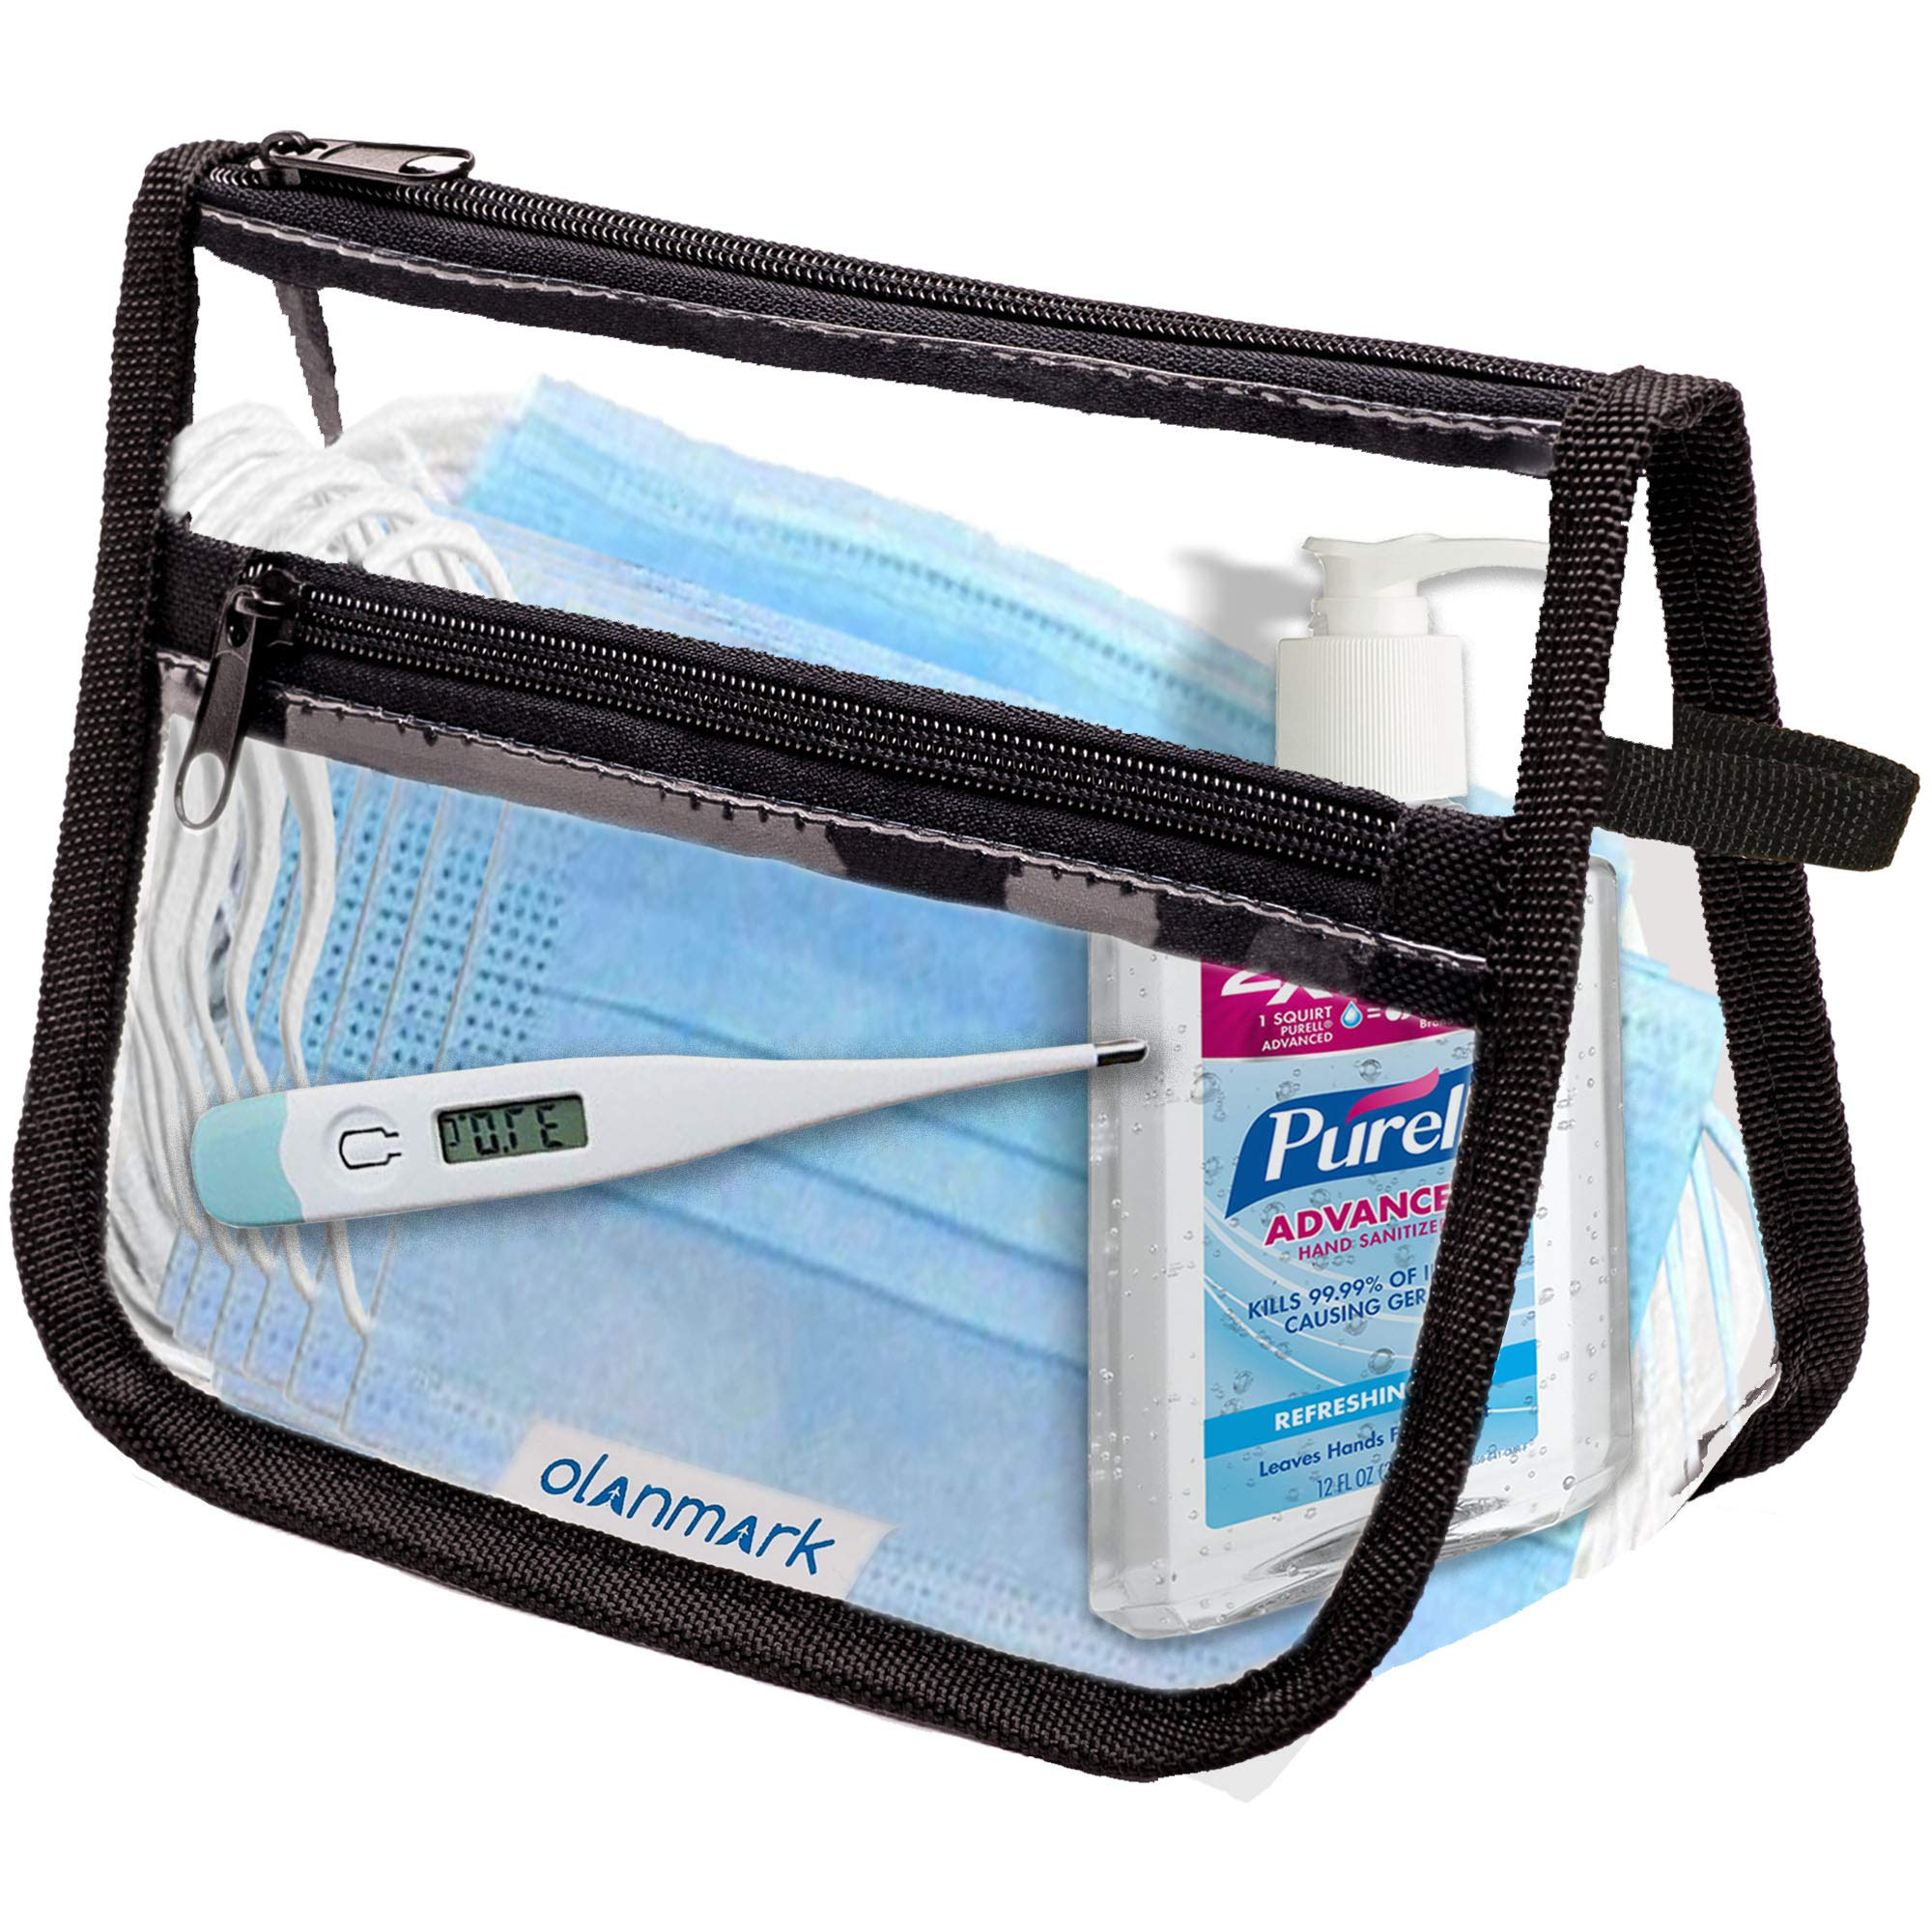 TSA Approved Toiletry Bag with Pocket - Clear Plastic Travel Cosmetic Bag - Reusable Quart Size Bags for Liquids - Airport TSA Compliant Makeup Pouch - Airline Carry-on Luggage Accessories for Women